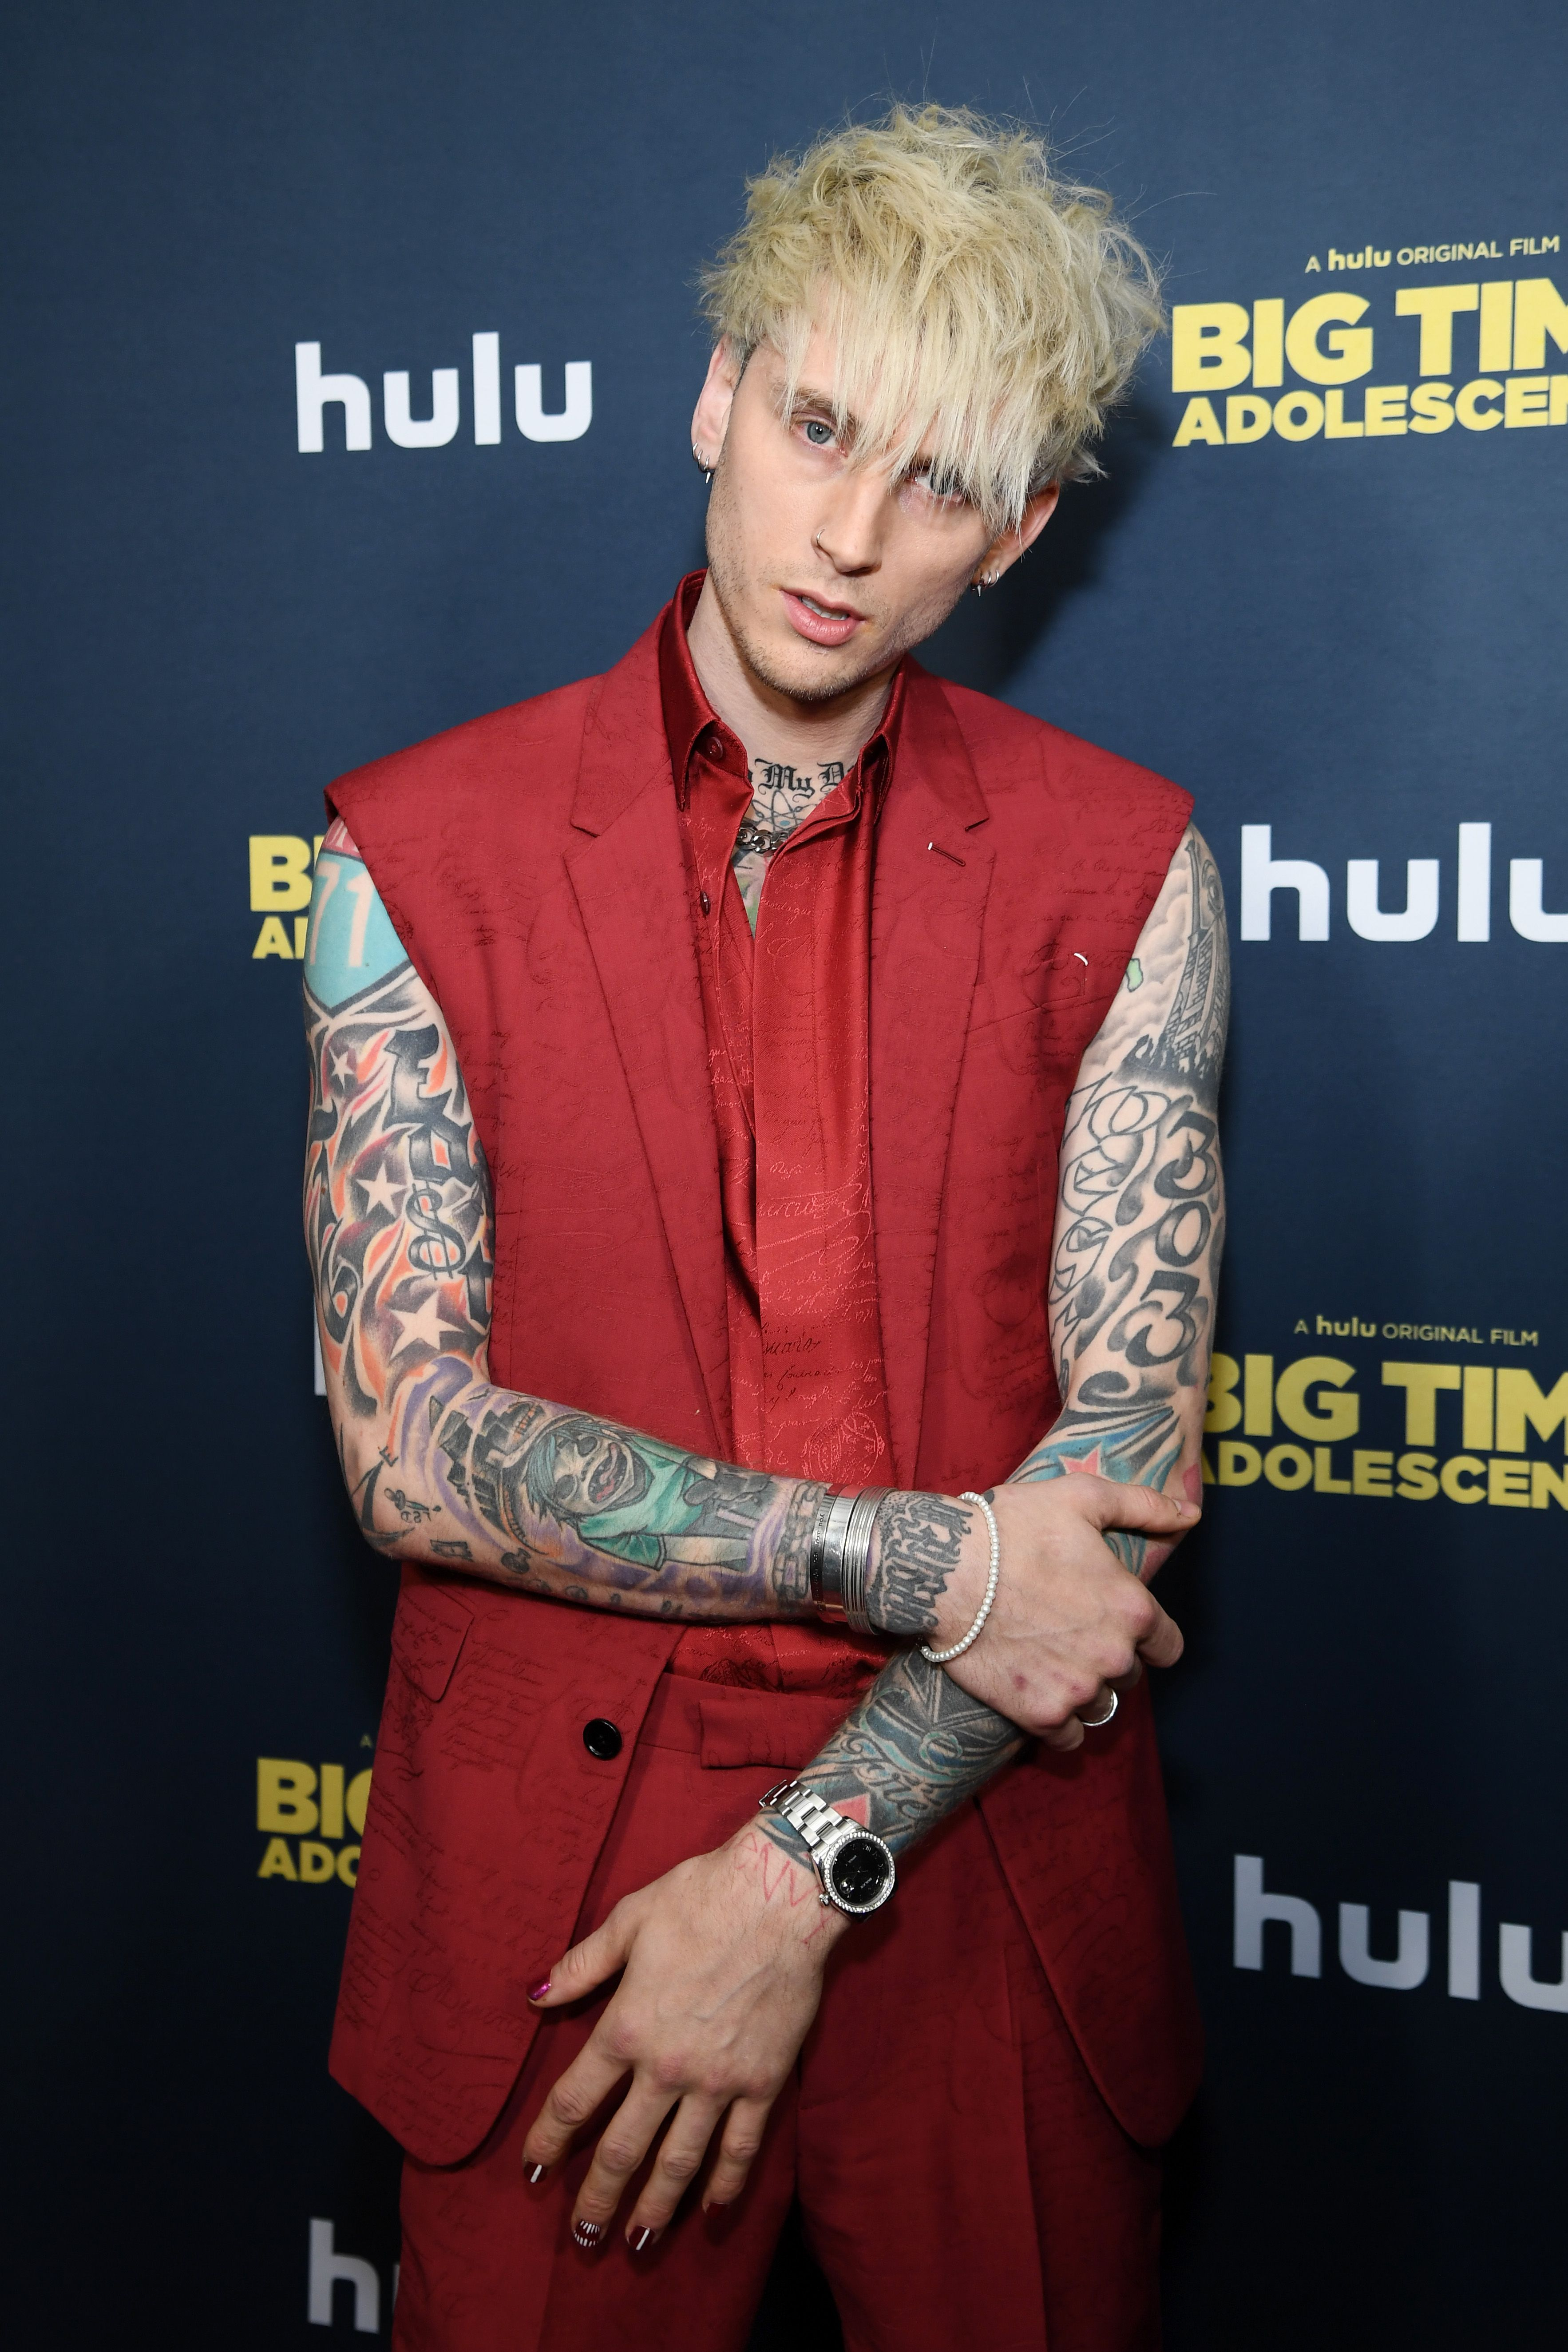 """Machine Gun Kelly at the premiere of """"Big Time Adolescence"""" in March 2020 in New York City 